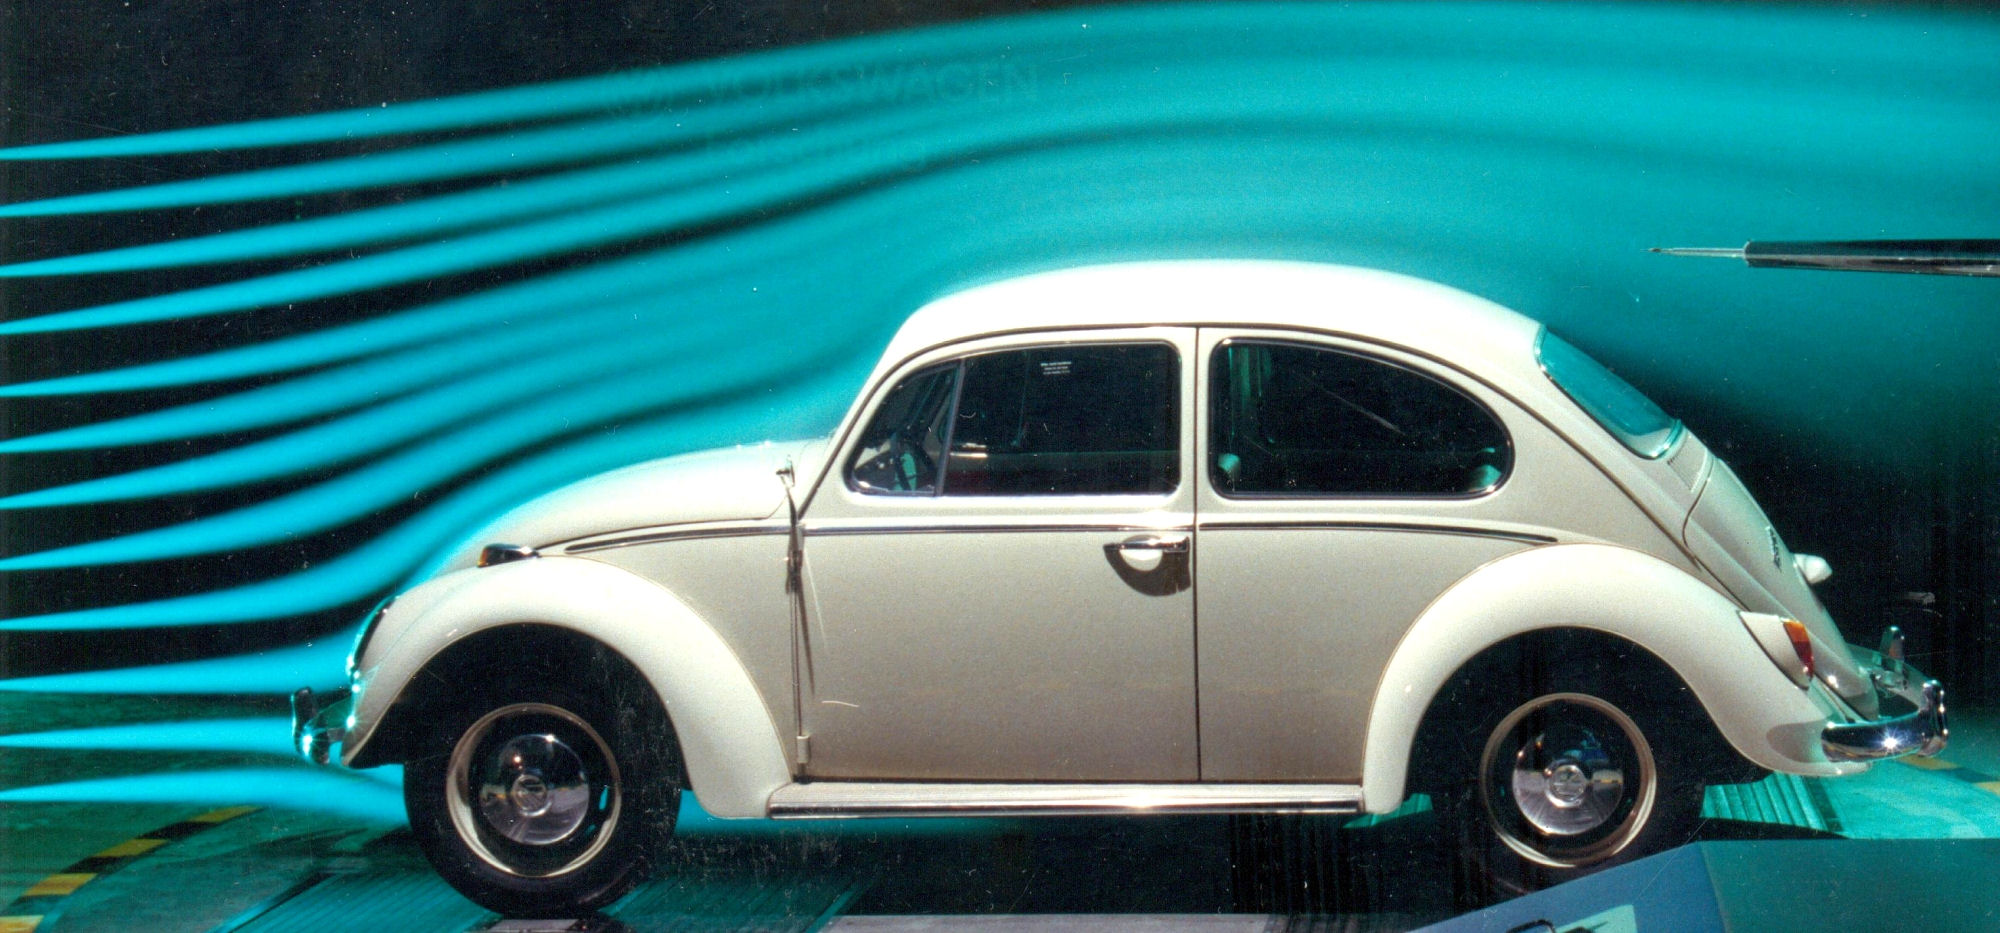 Volkswagen windtunnel test